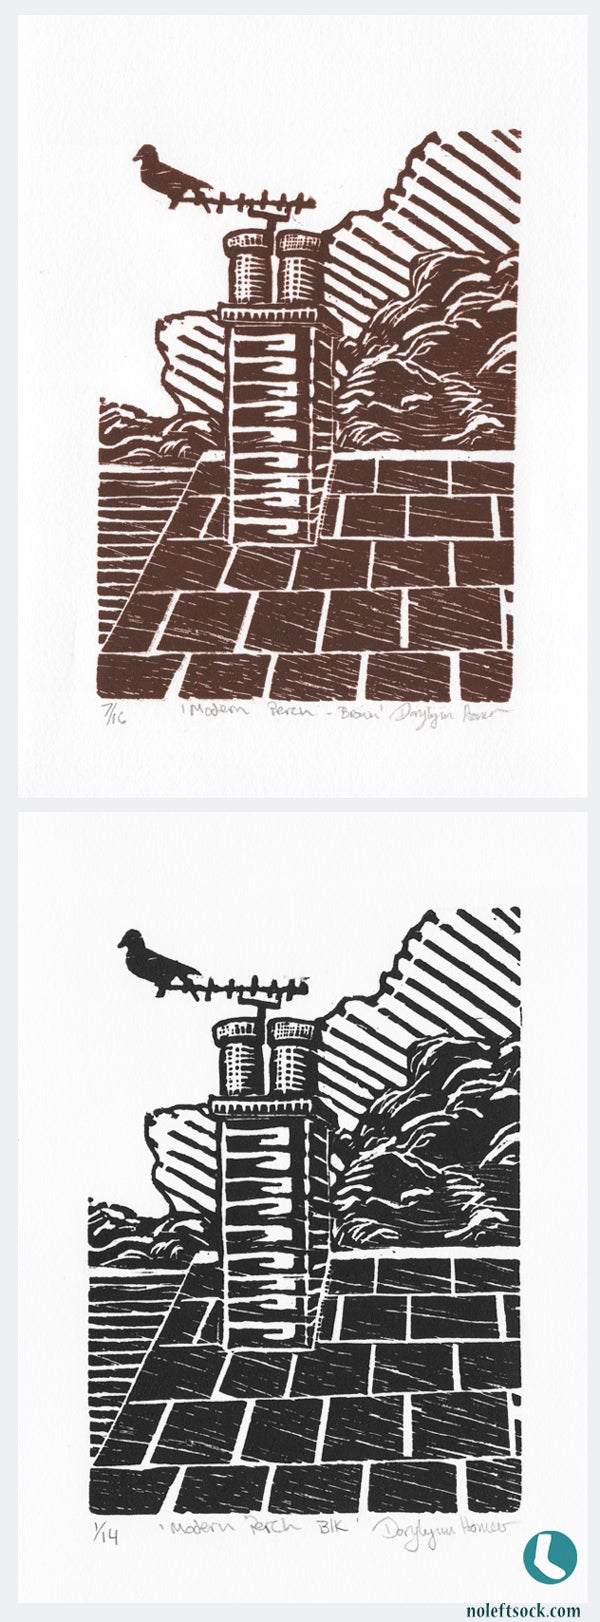 Image of Modern Perch woodcut print in brown or black